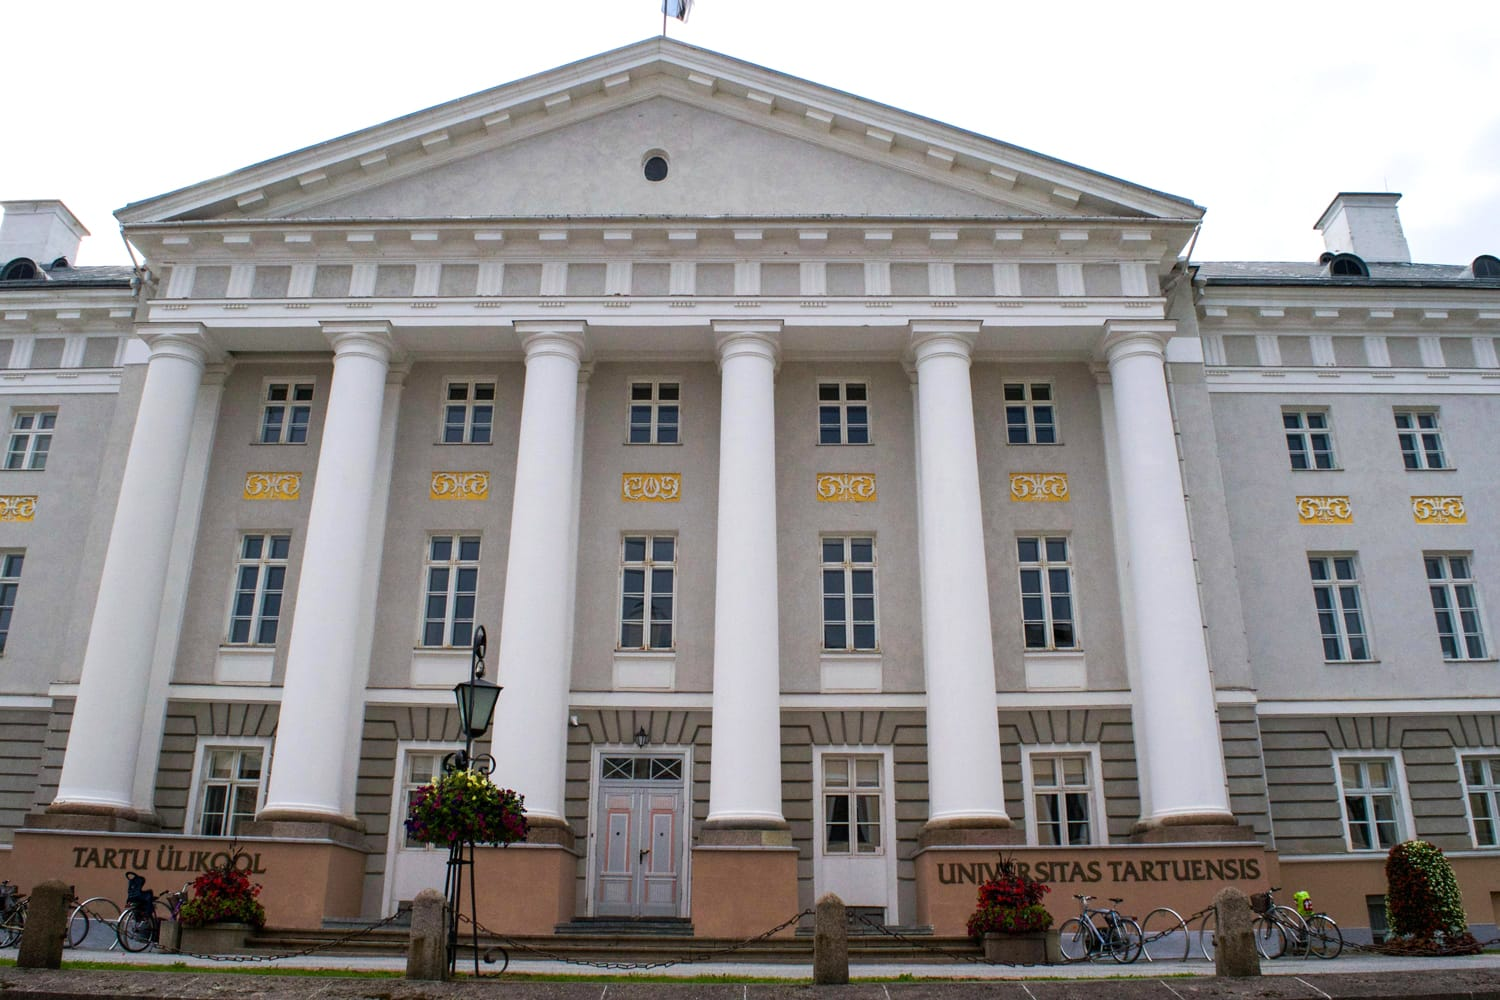 University in Tartu, Estonia